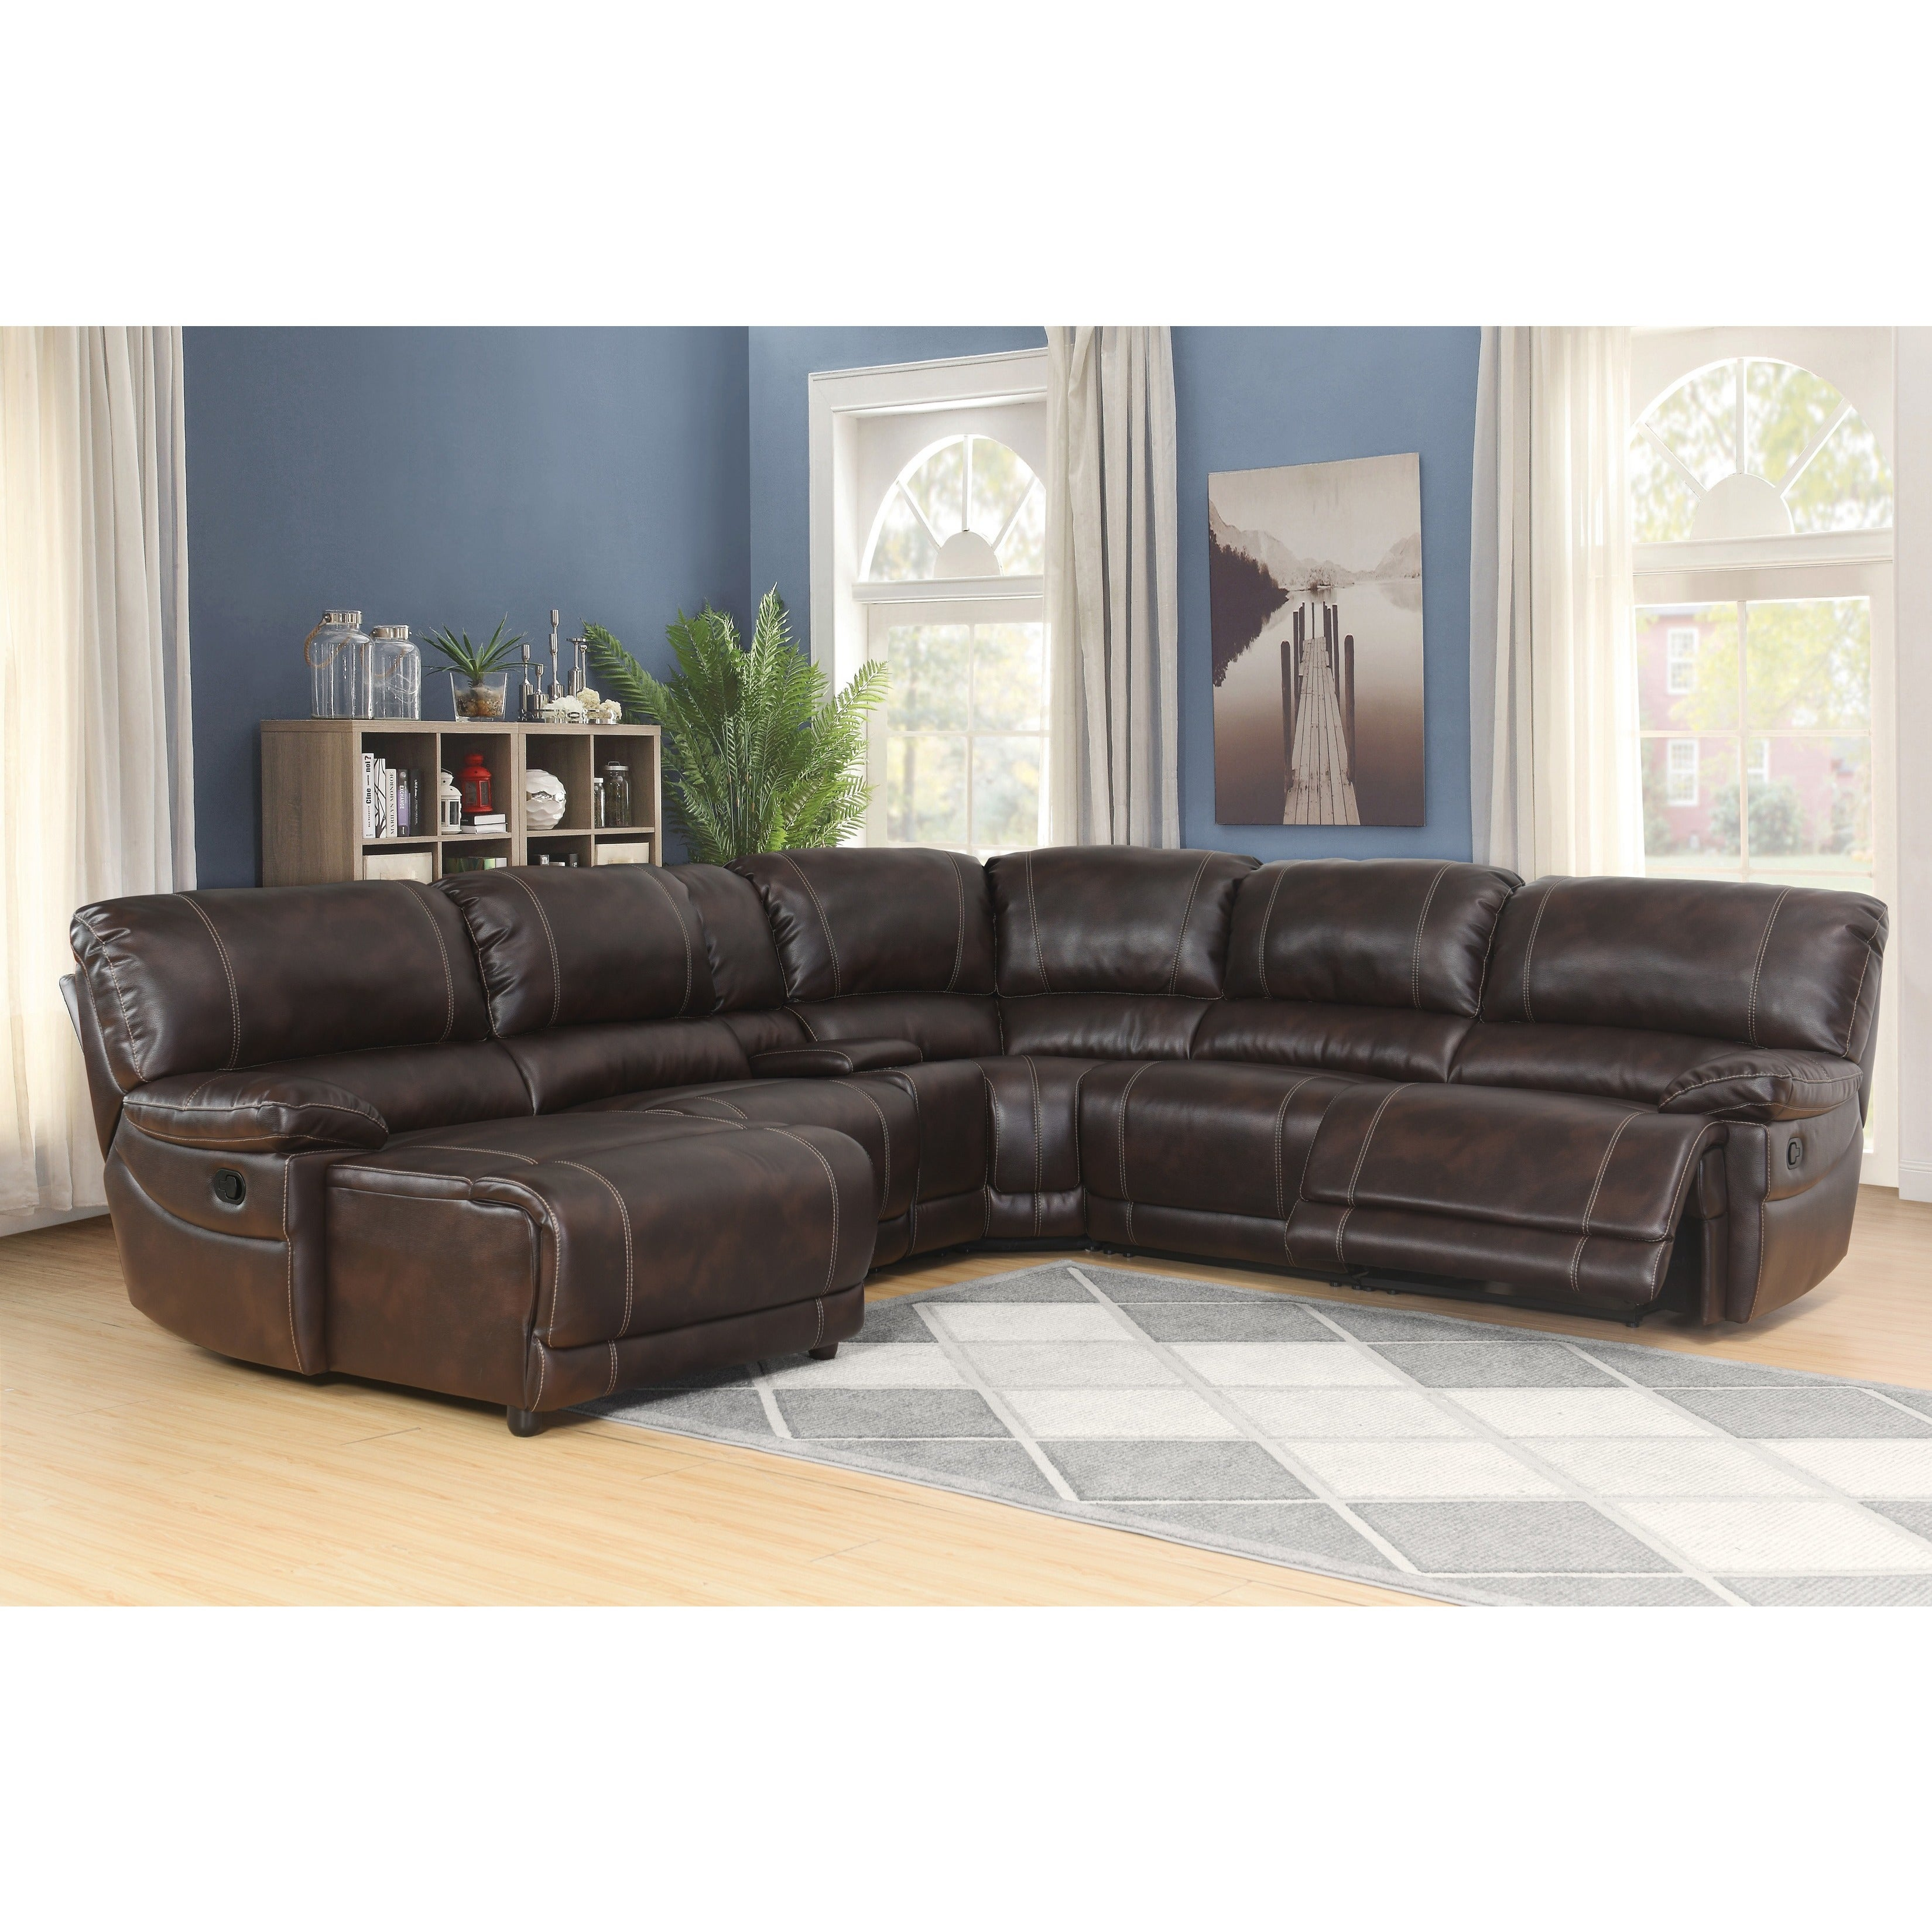 Shop Abbyson Cooper 6 Piece Dark Brown Sectional Sofa On Sale